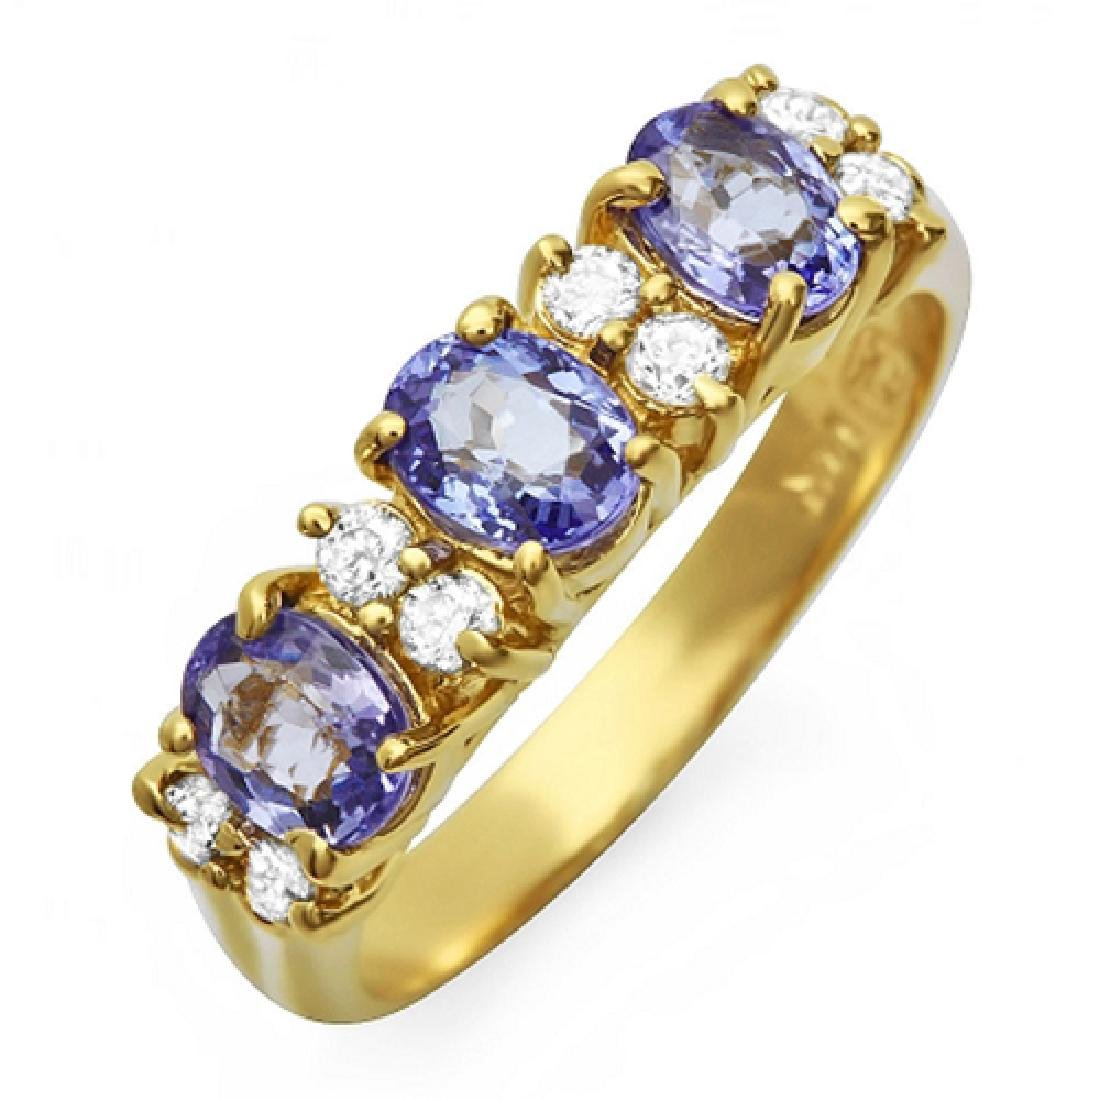 1.36 Carat Natural Tanzanite 18K Solid Yellow Gold